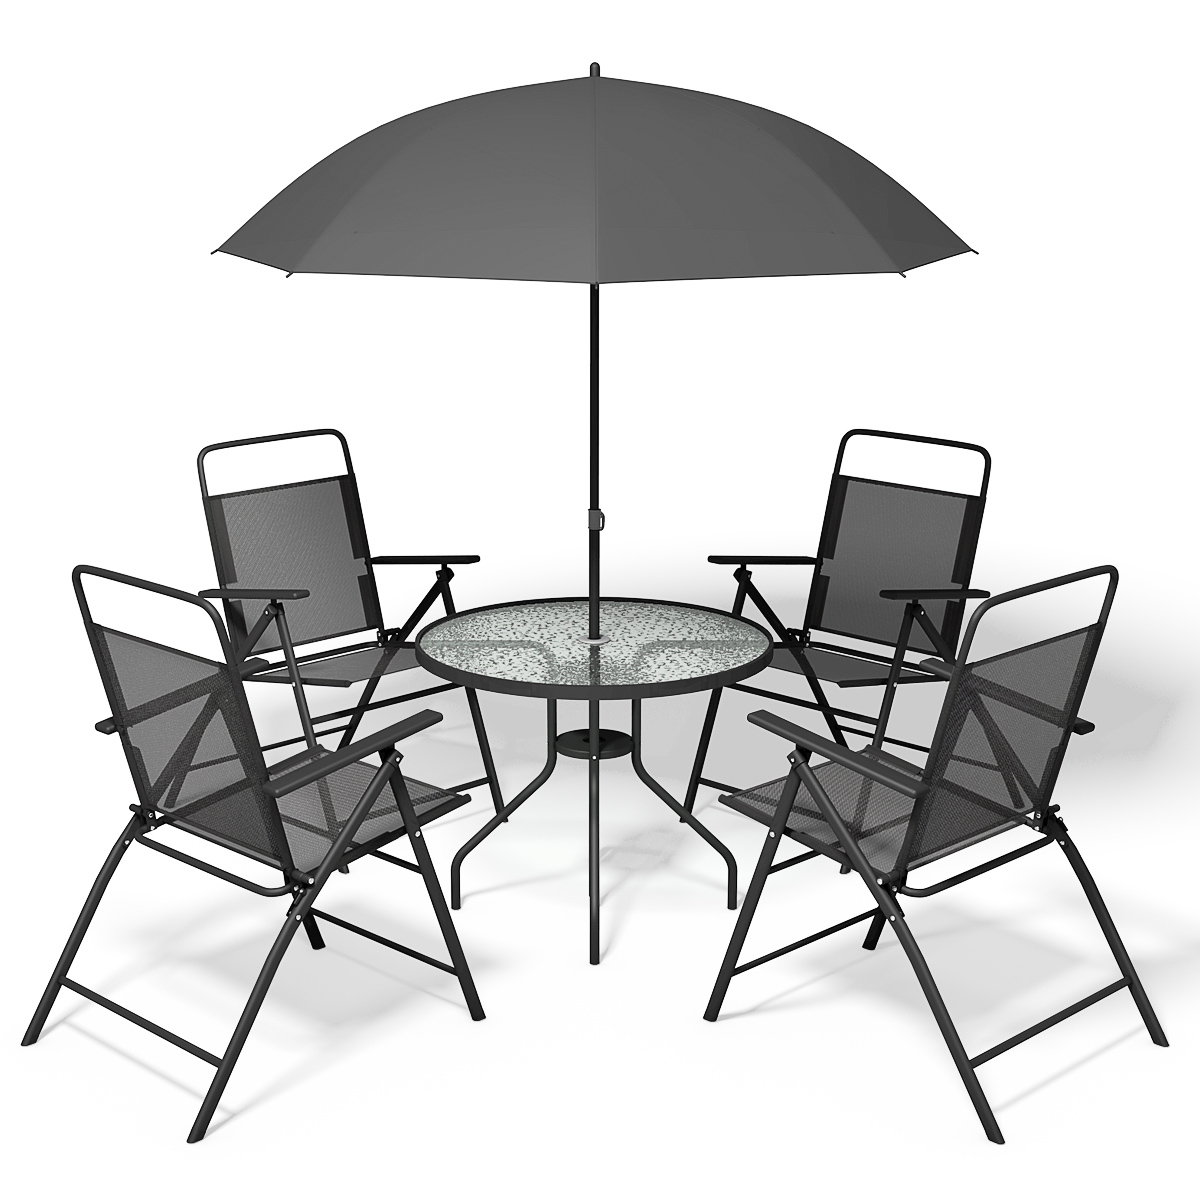 Table With Chairs Costway 6 Pcs Patio Garden Set Furniture Umbrella Gray With 4 Folding Chairs Table